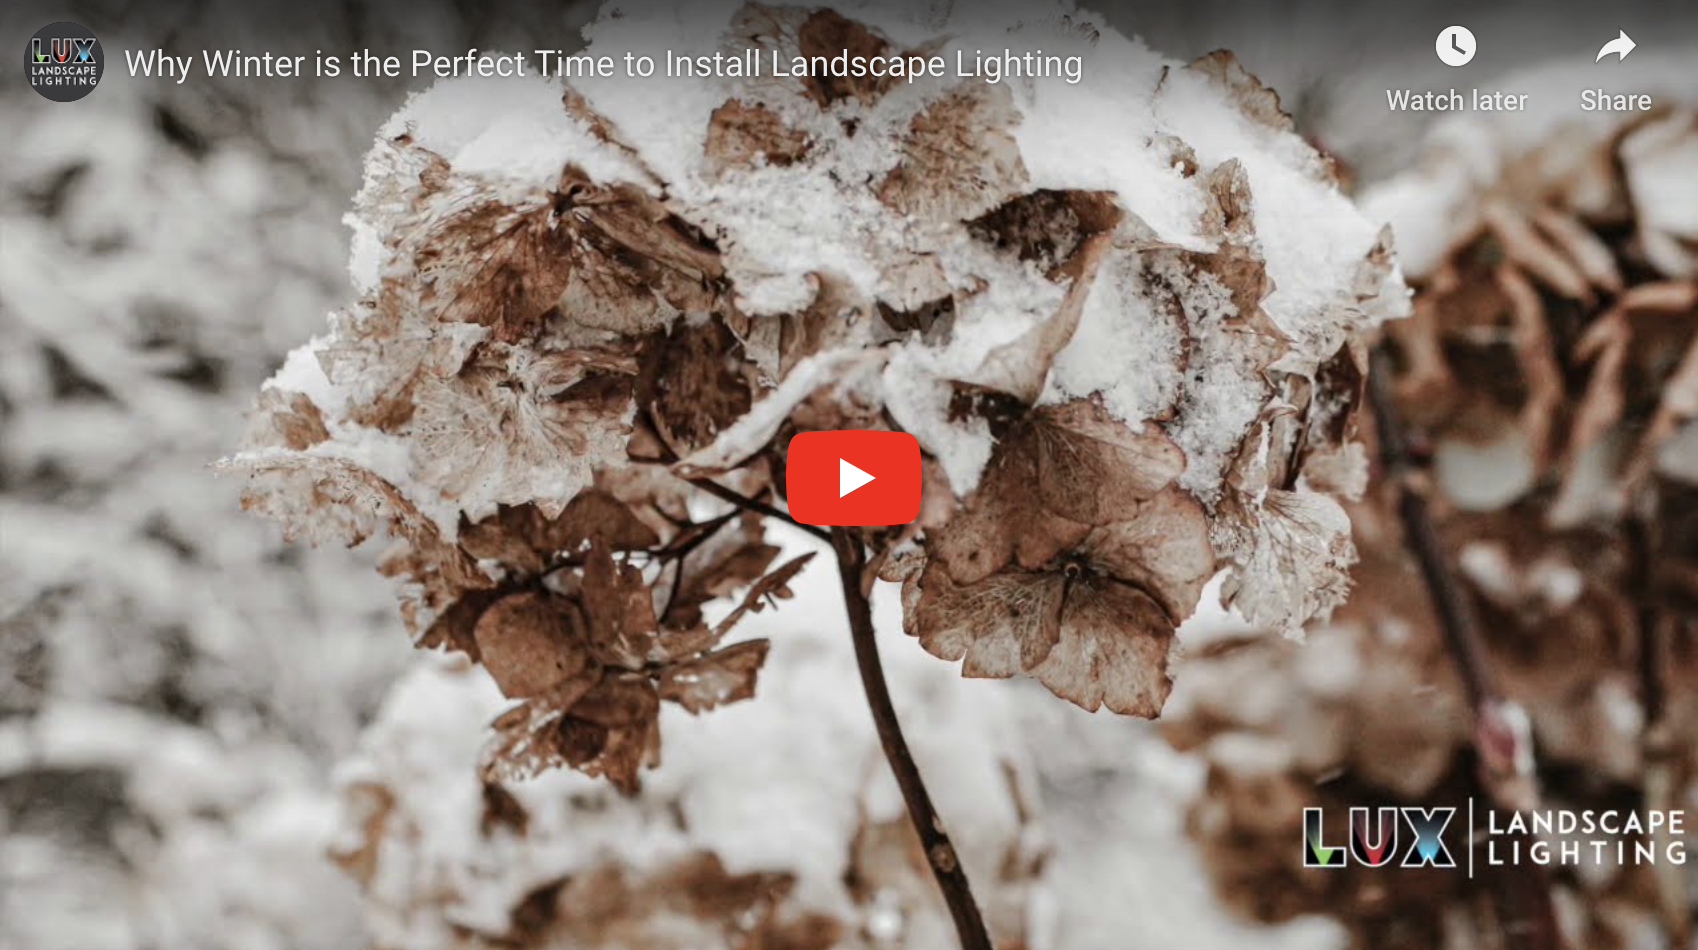 Why Winter is the Perfect Time to Install Landscape Lighting